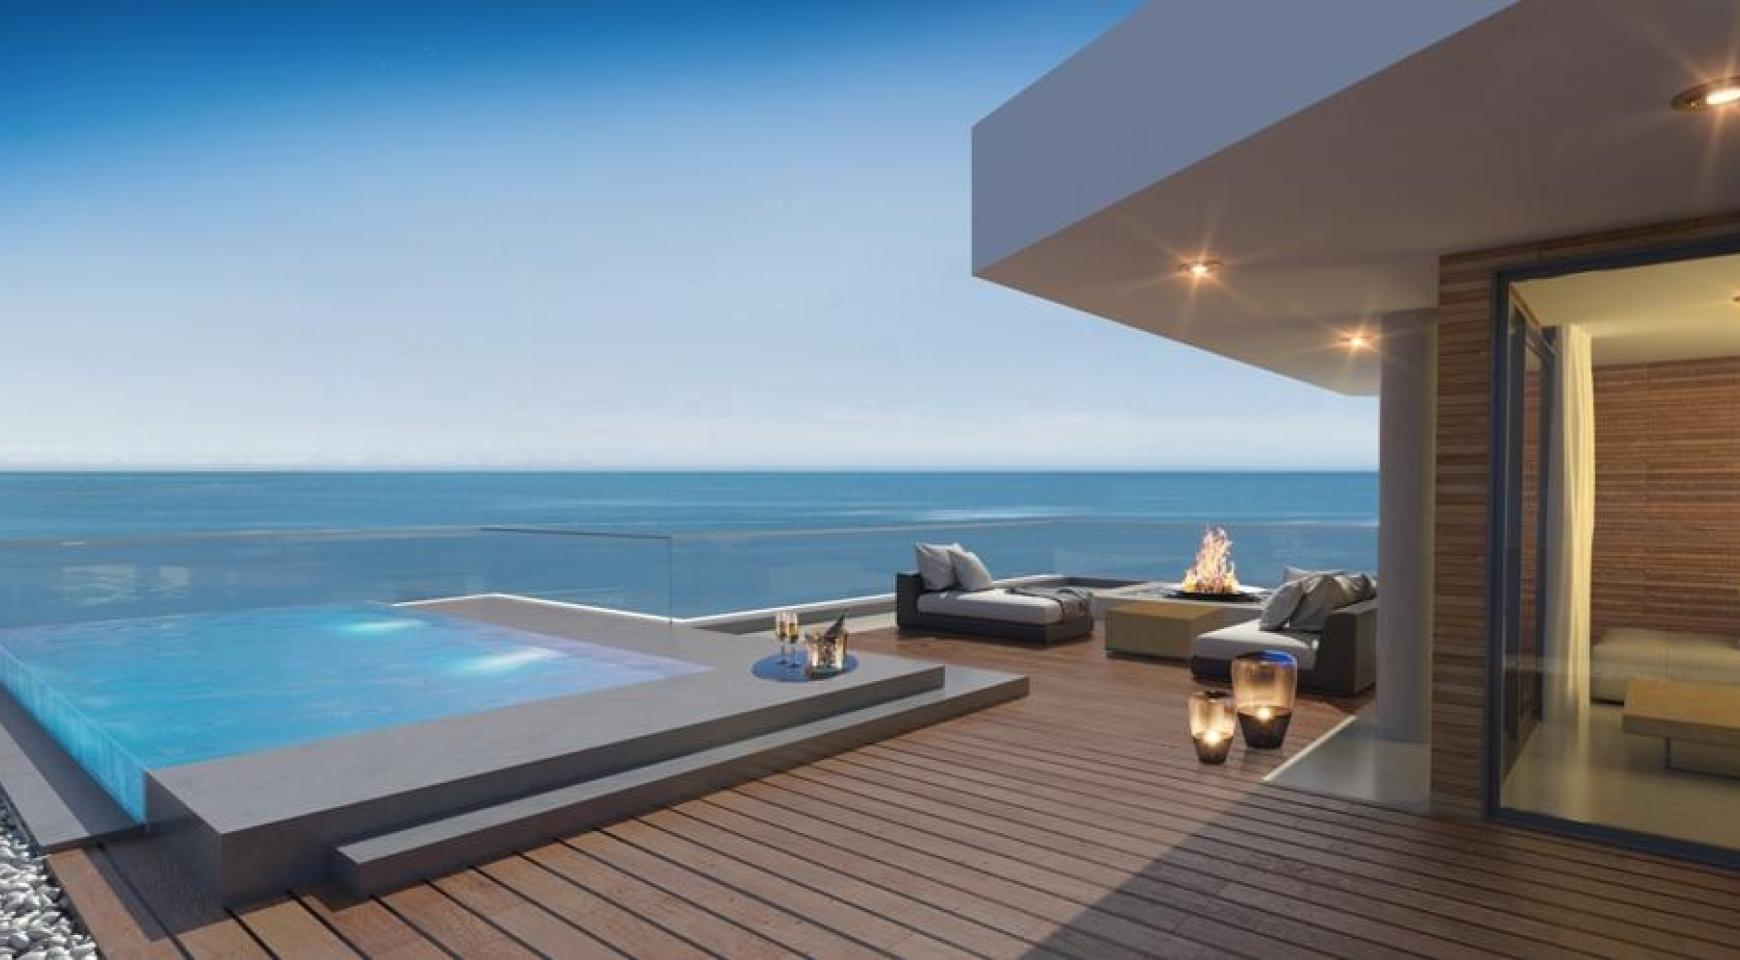 Contemporary 4 Bedroom Villa in a New Project by the Sea - 32